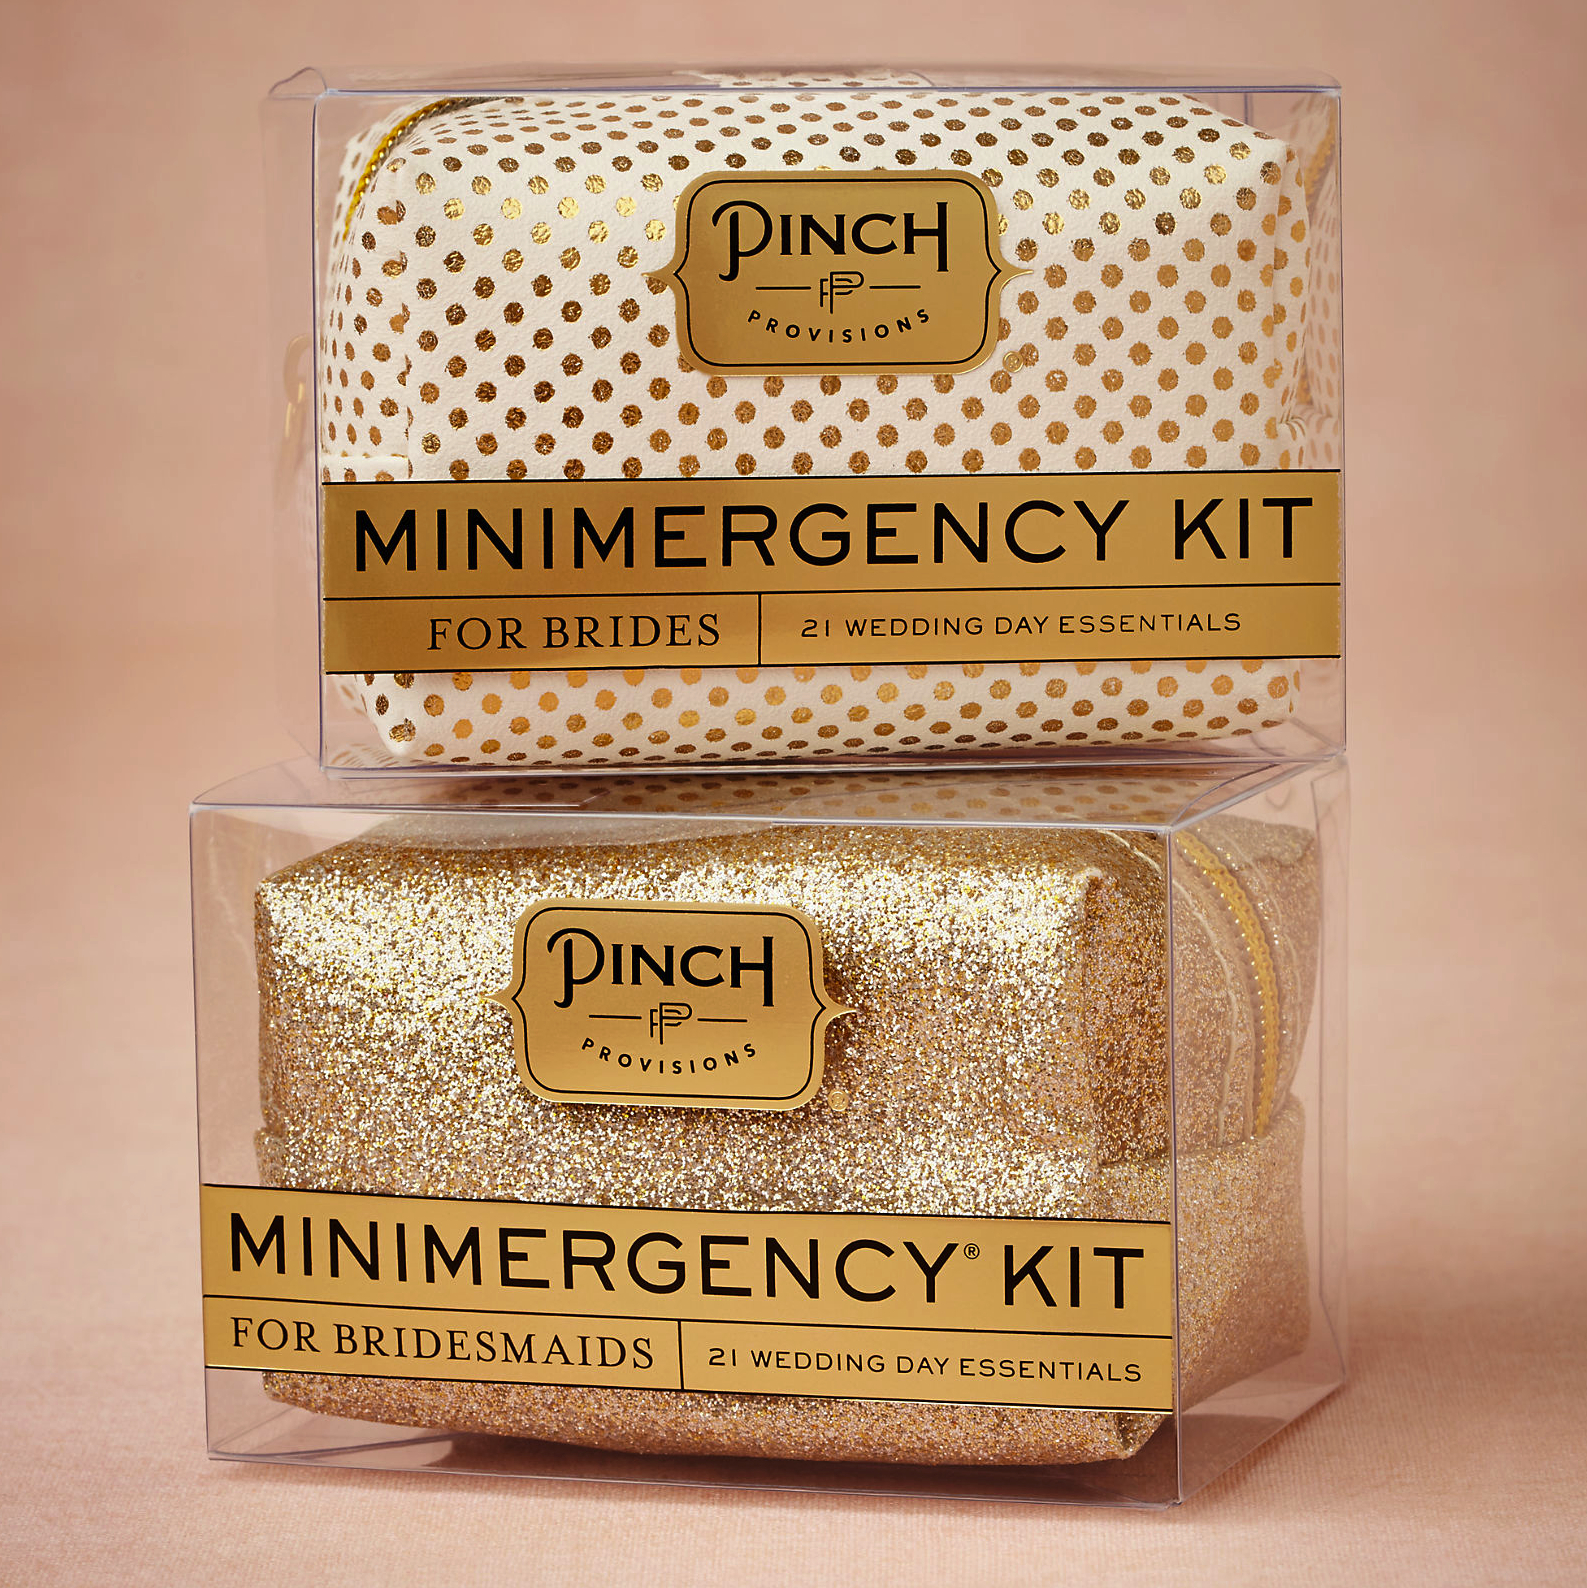 Emergency Kit for Brides and Bridesmaids